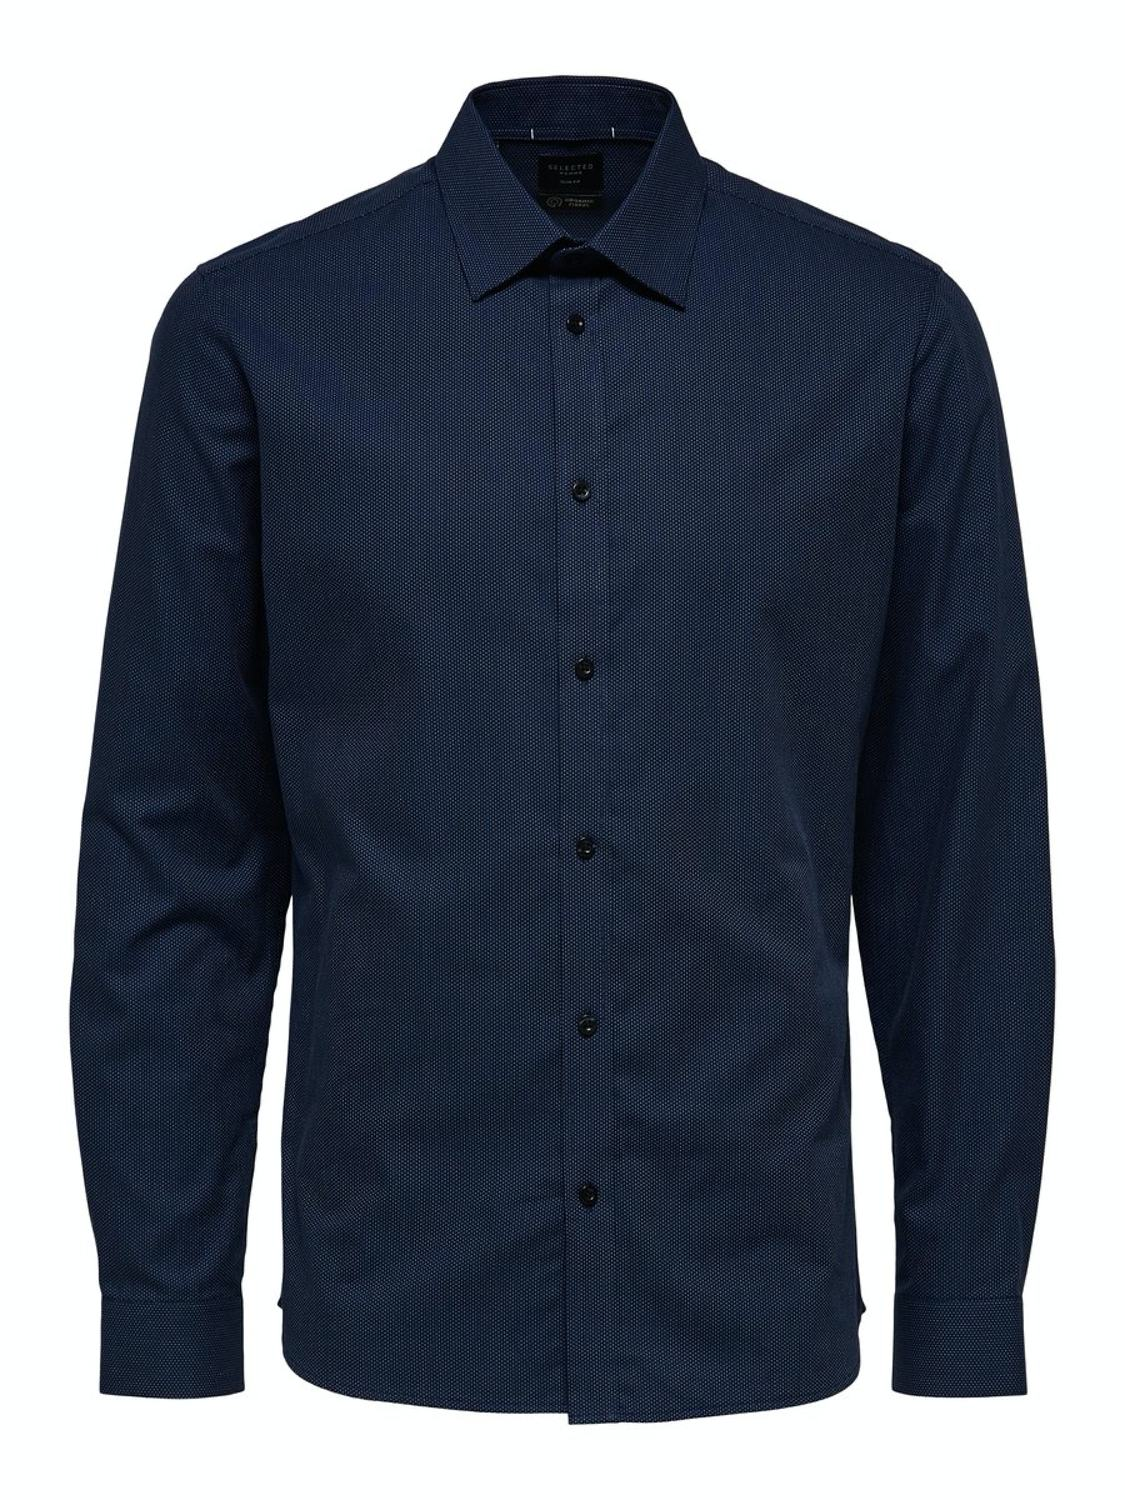 Selected Skjorte - Slhslimmalcolm Shirt Dark Navy | GATE 36 Hobro